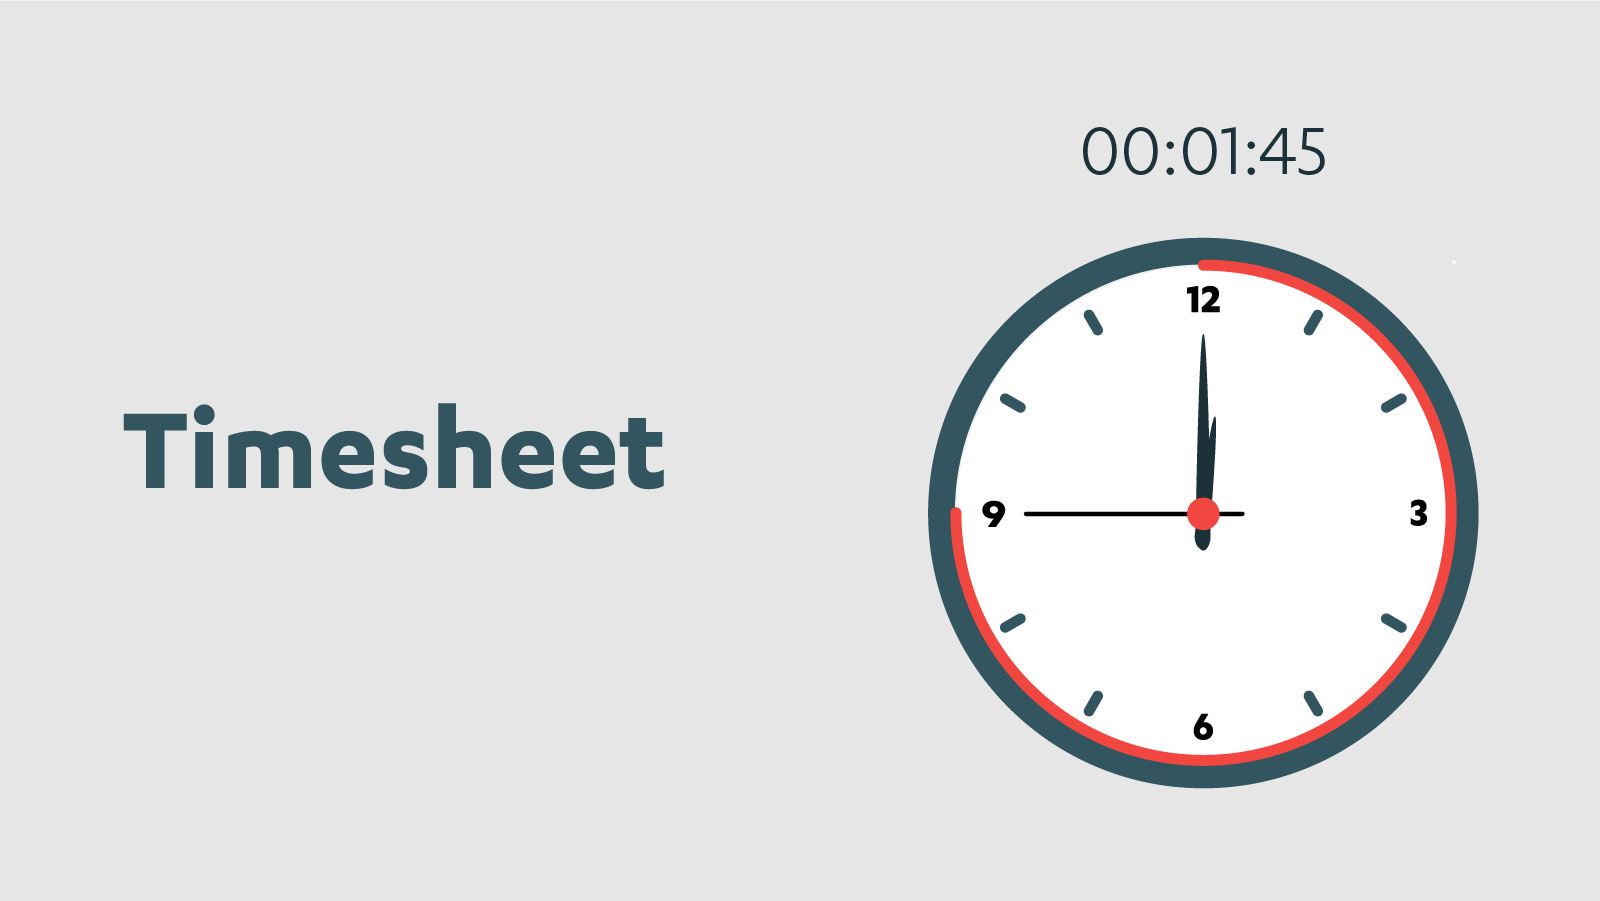 Timesheet Smoall business tools - Management